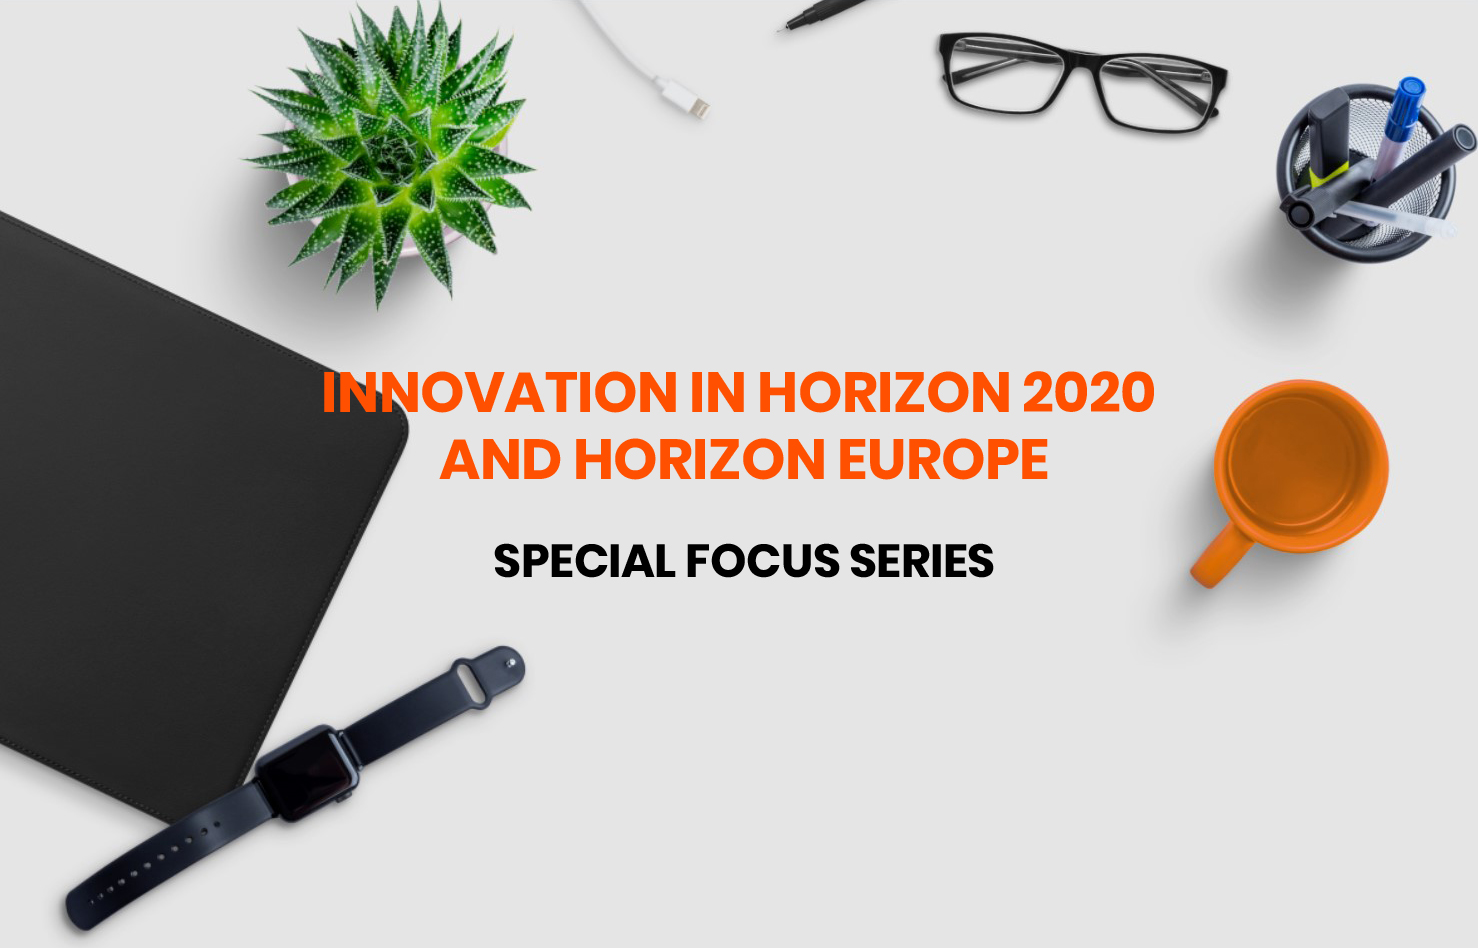 Innovation in Horizon 2020 and Horizon Europe